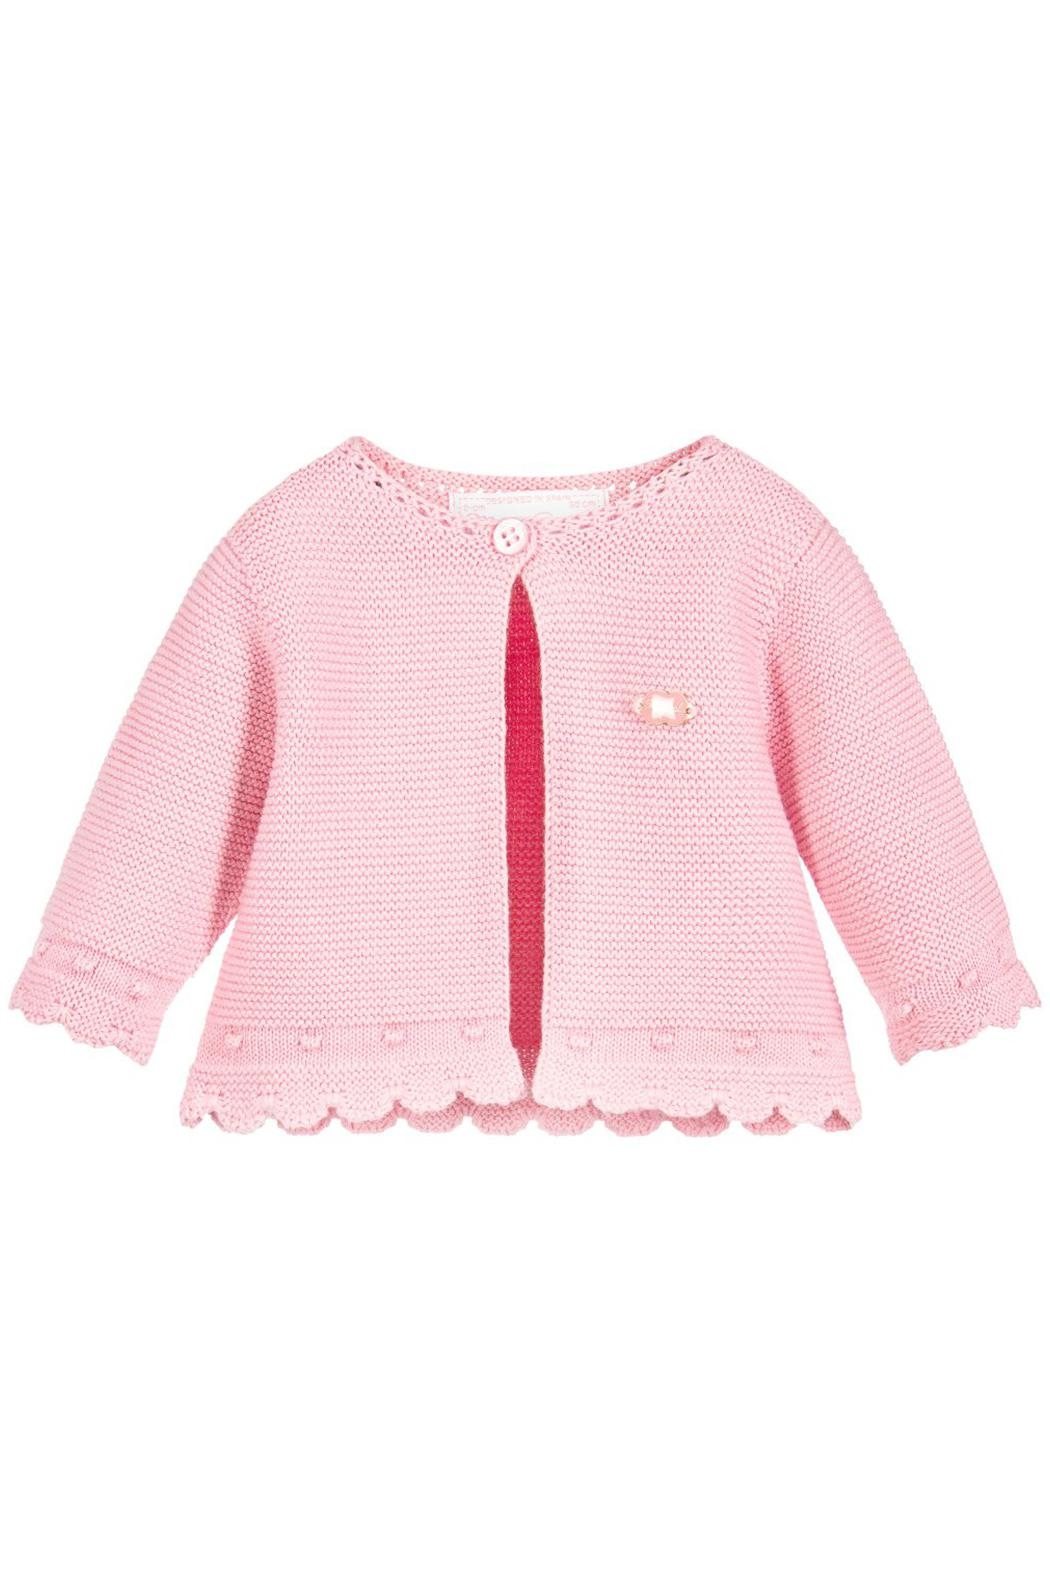 Mayoral Pink Sweater Cardigan - Front Cropped Image